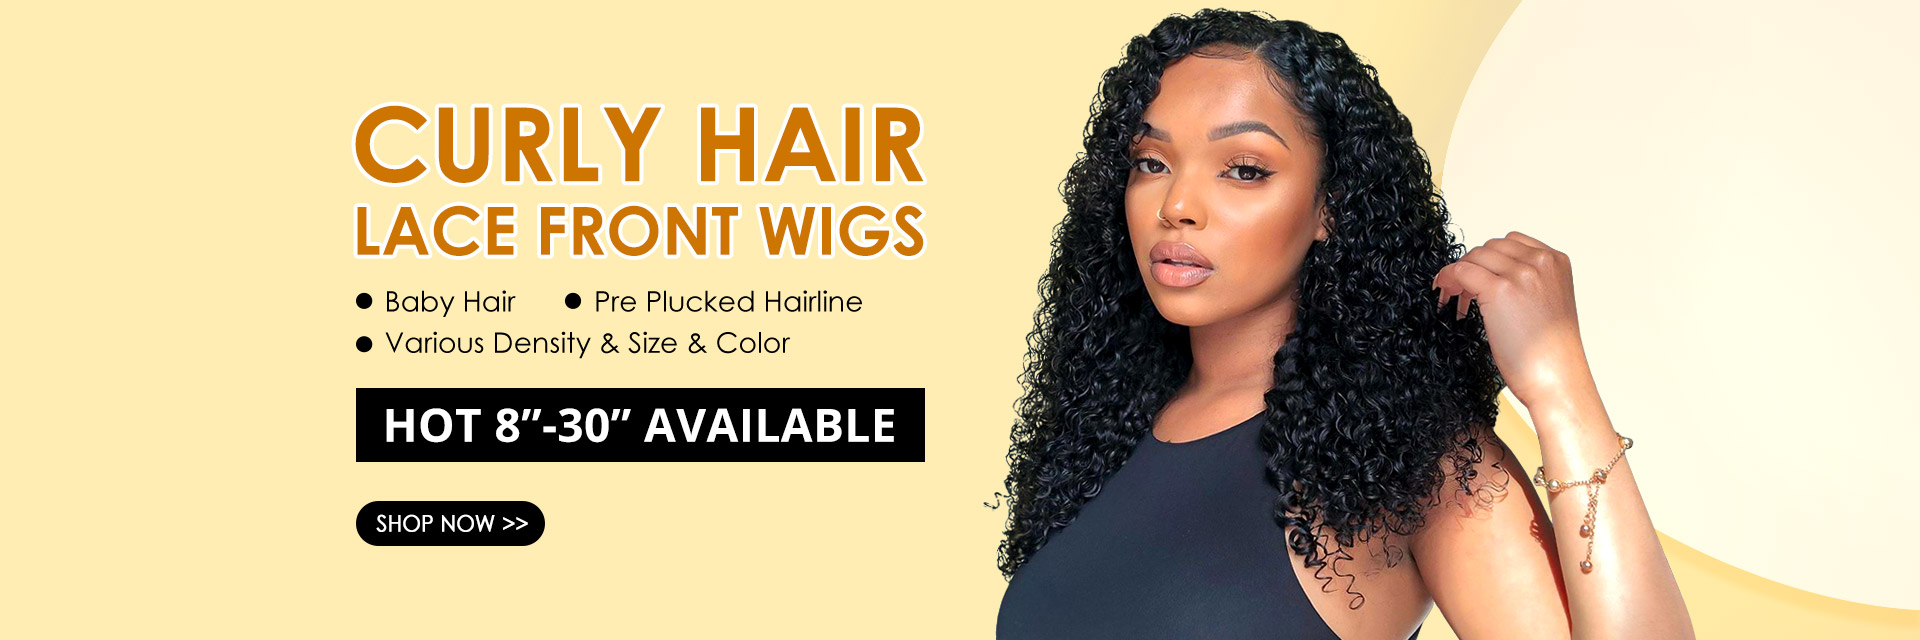 West kiss hair store offers curly lace front wigs on sale